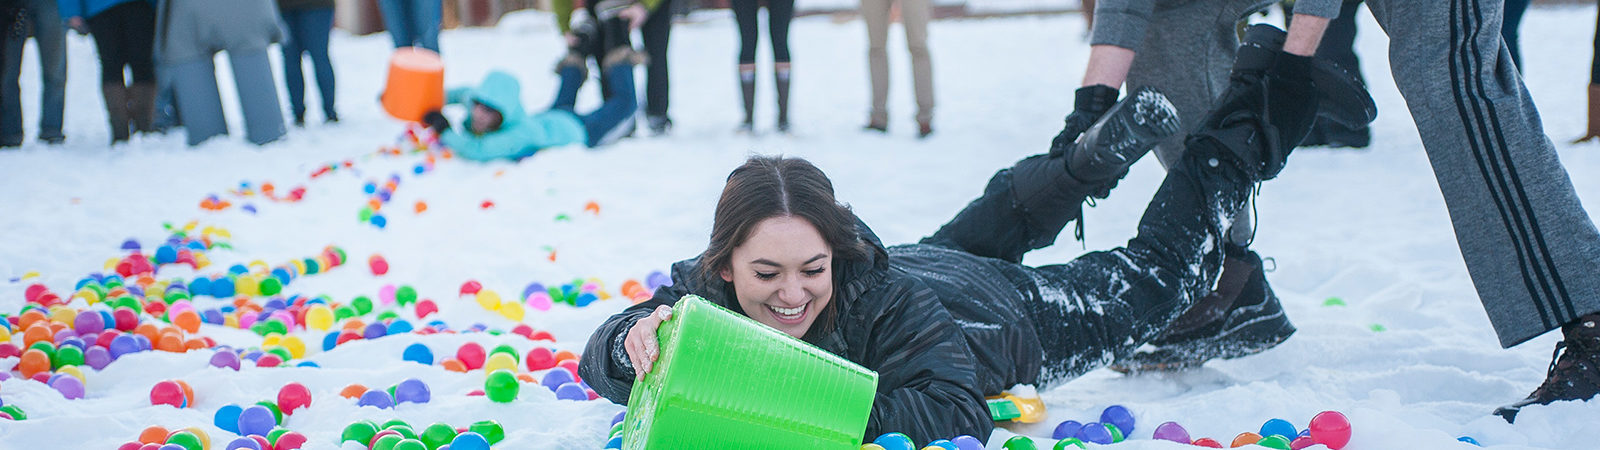 Students compete in Hungry Hungry Hippo game